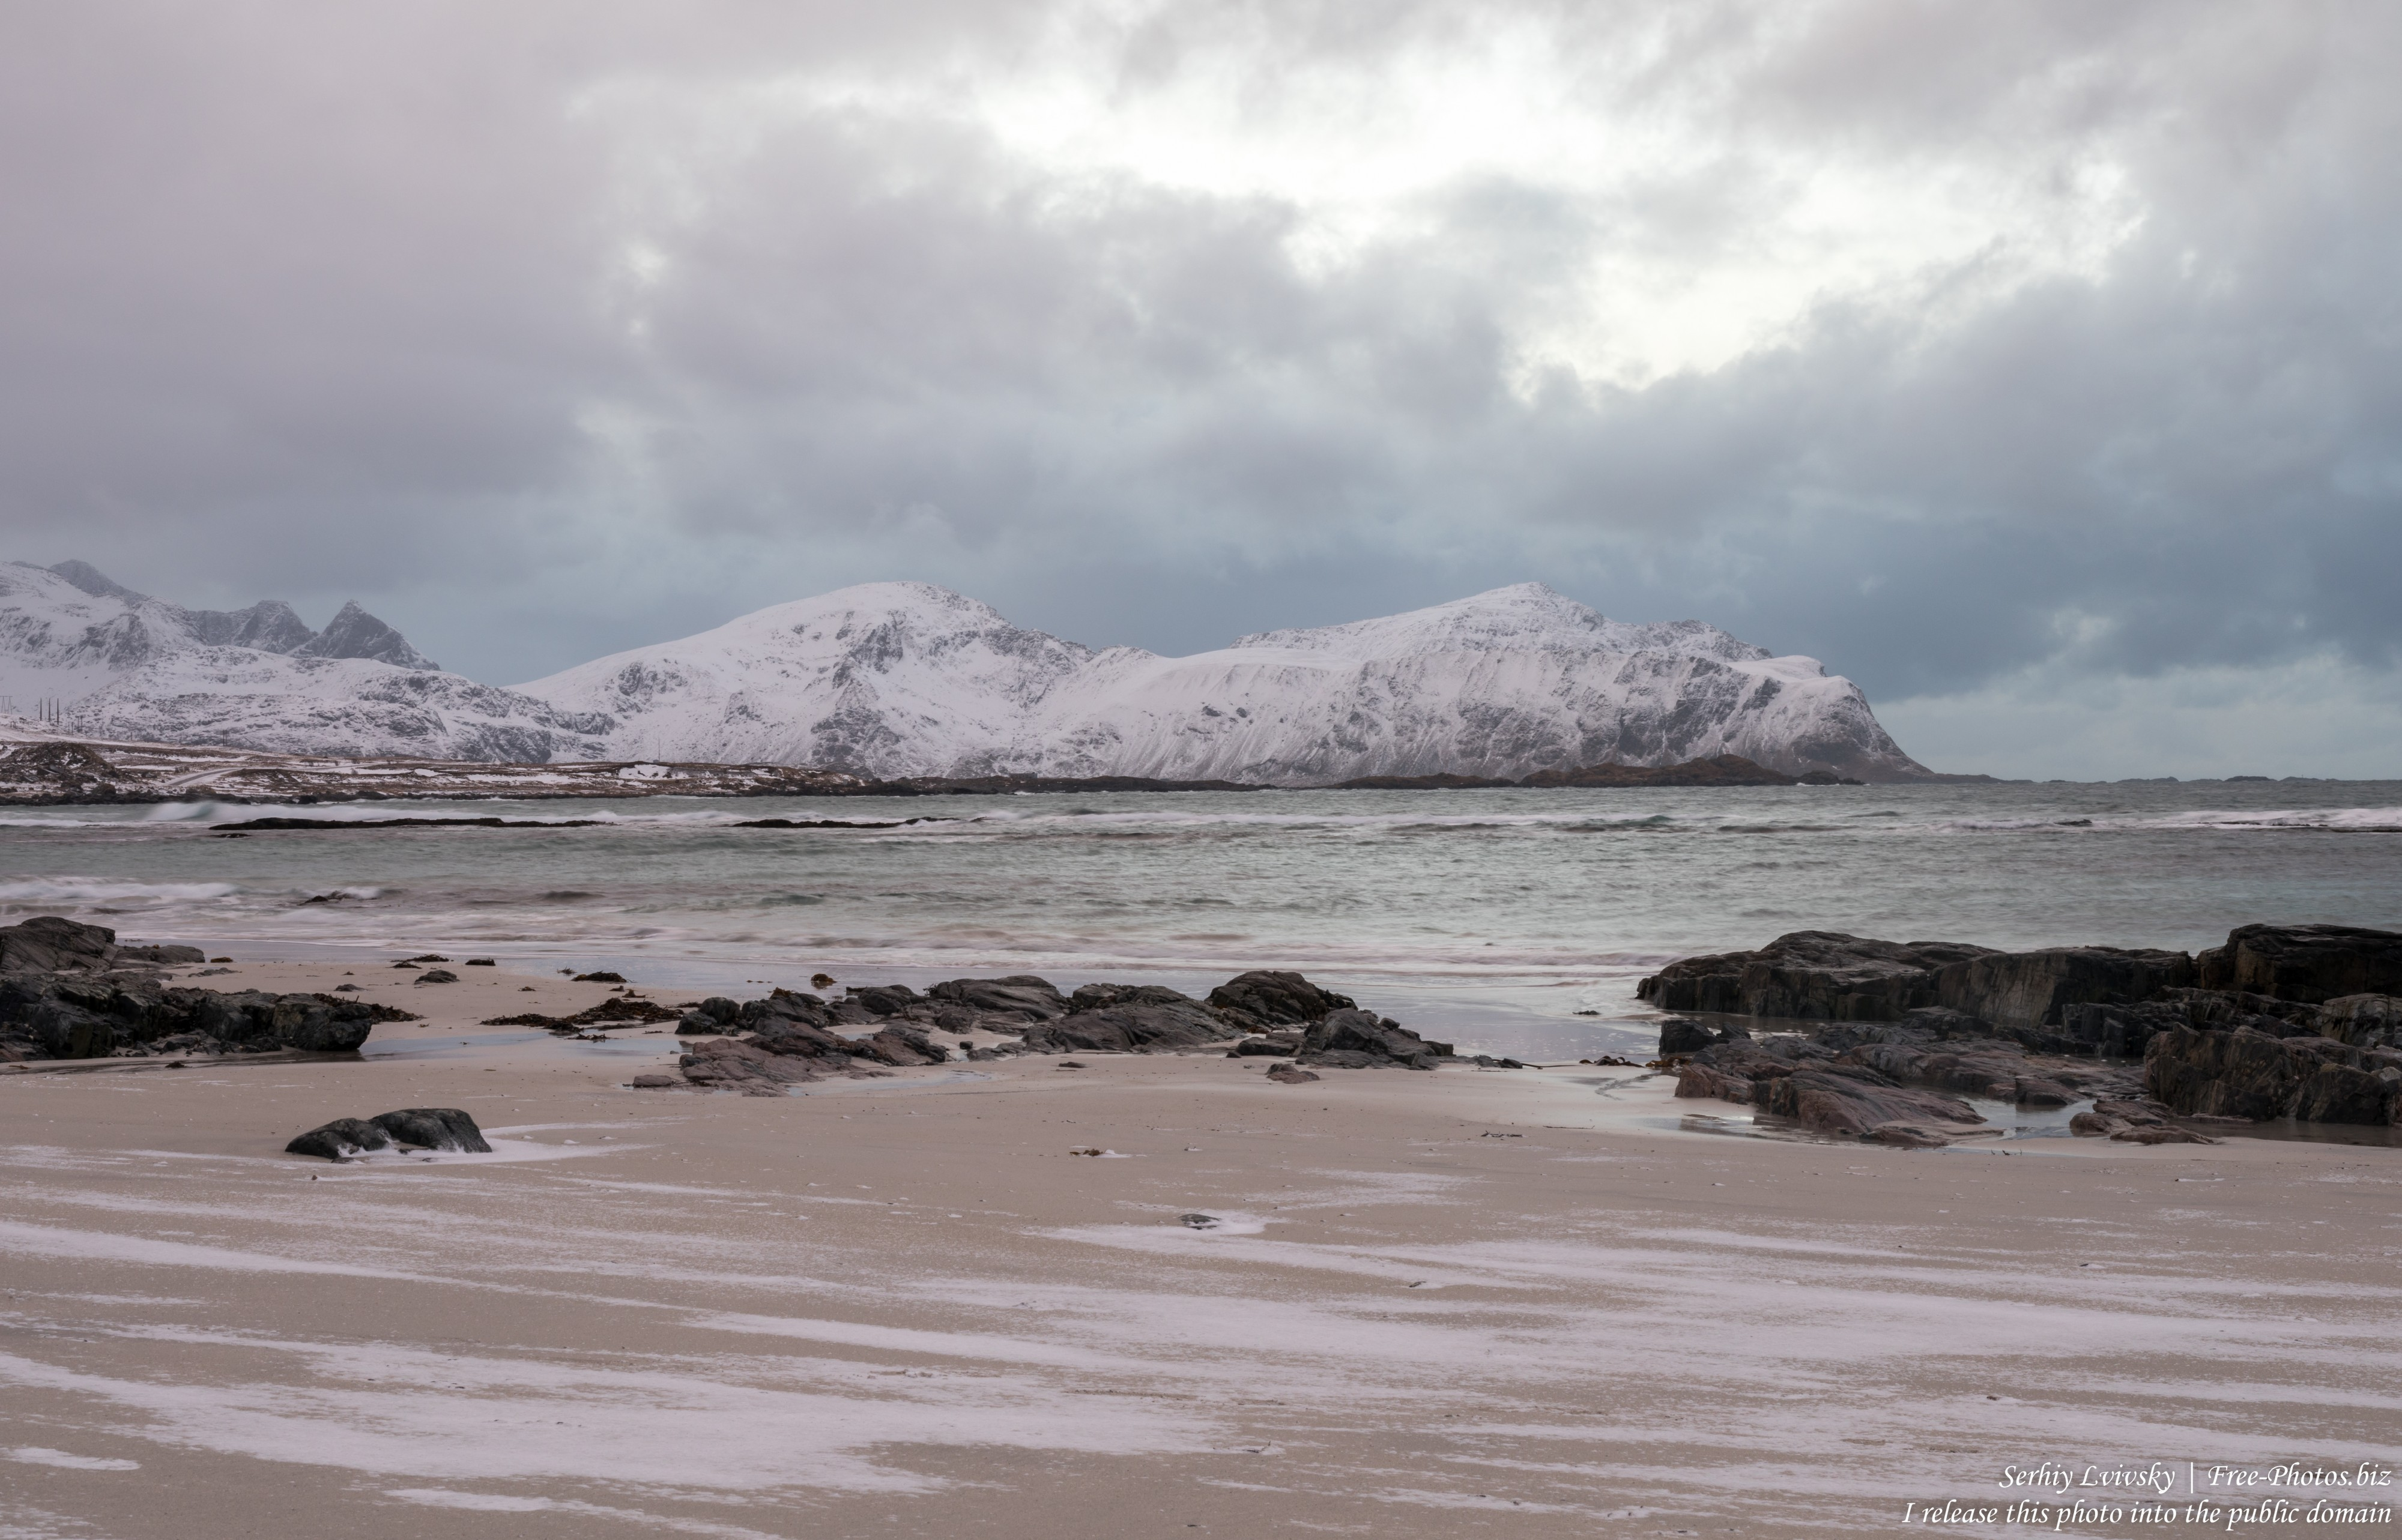 Skagsanden beach, Norway, photographed in February 2020 by Serhiy Lvivsky, picture 7